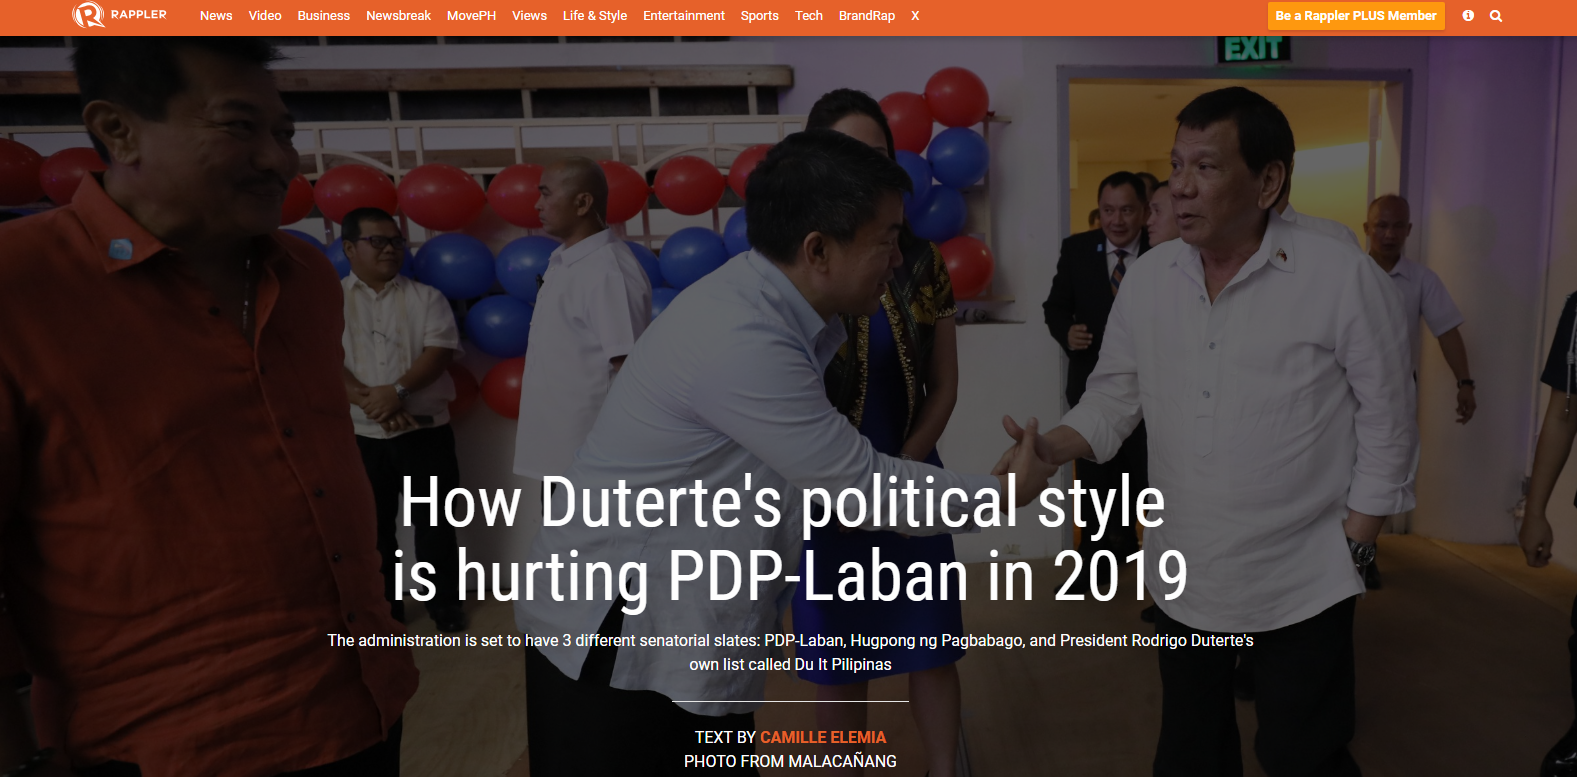 How Duterte's political style  is hurting PDP-Laban in 2019